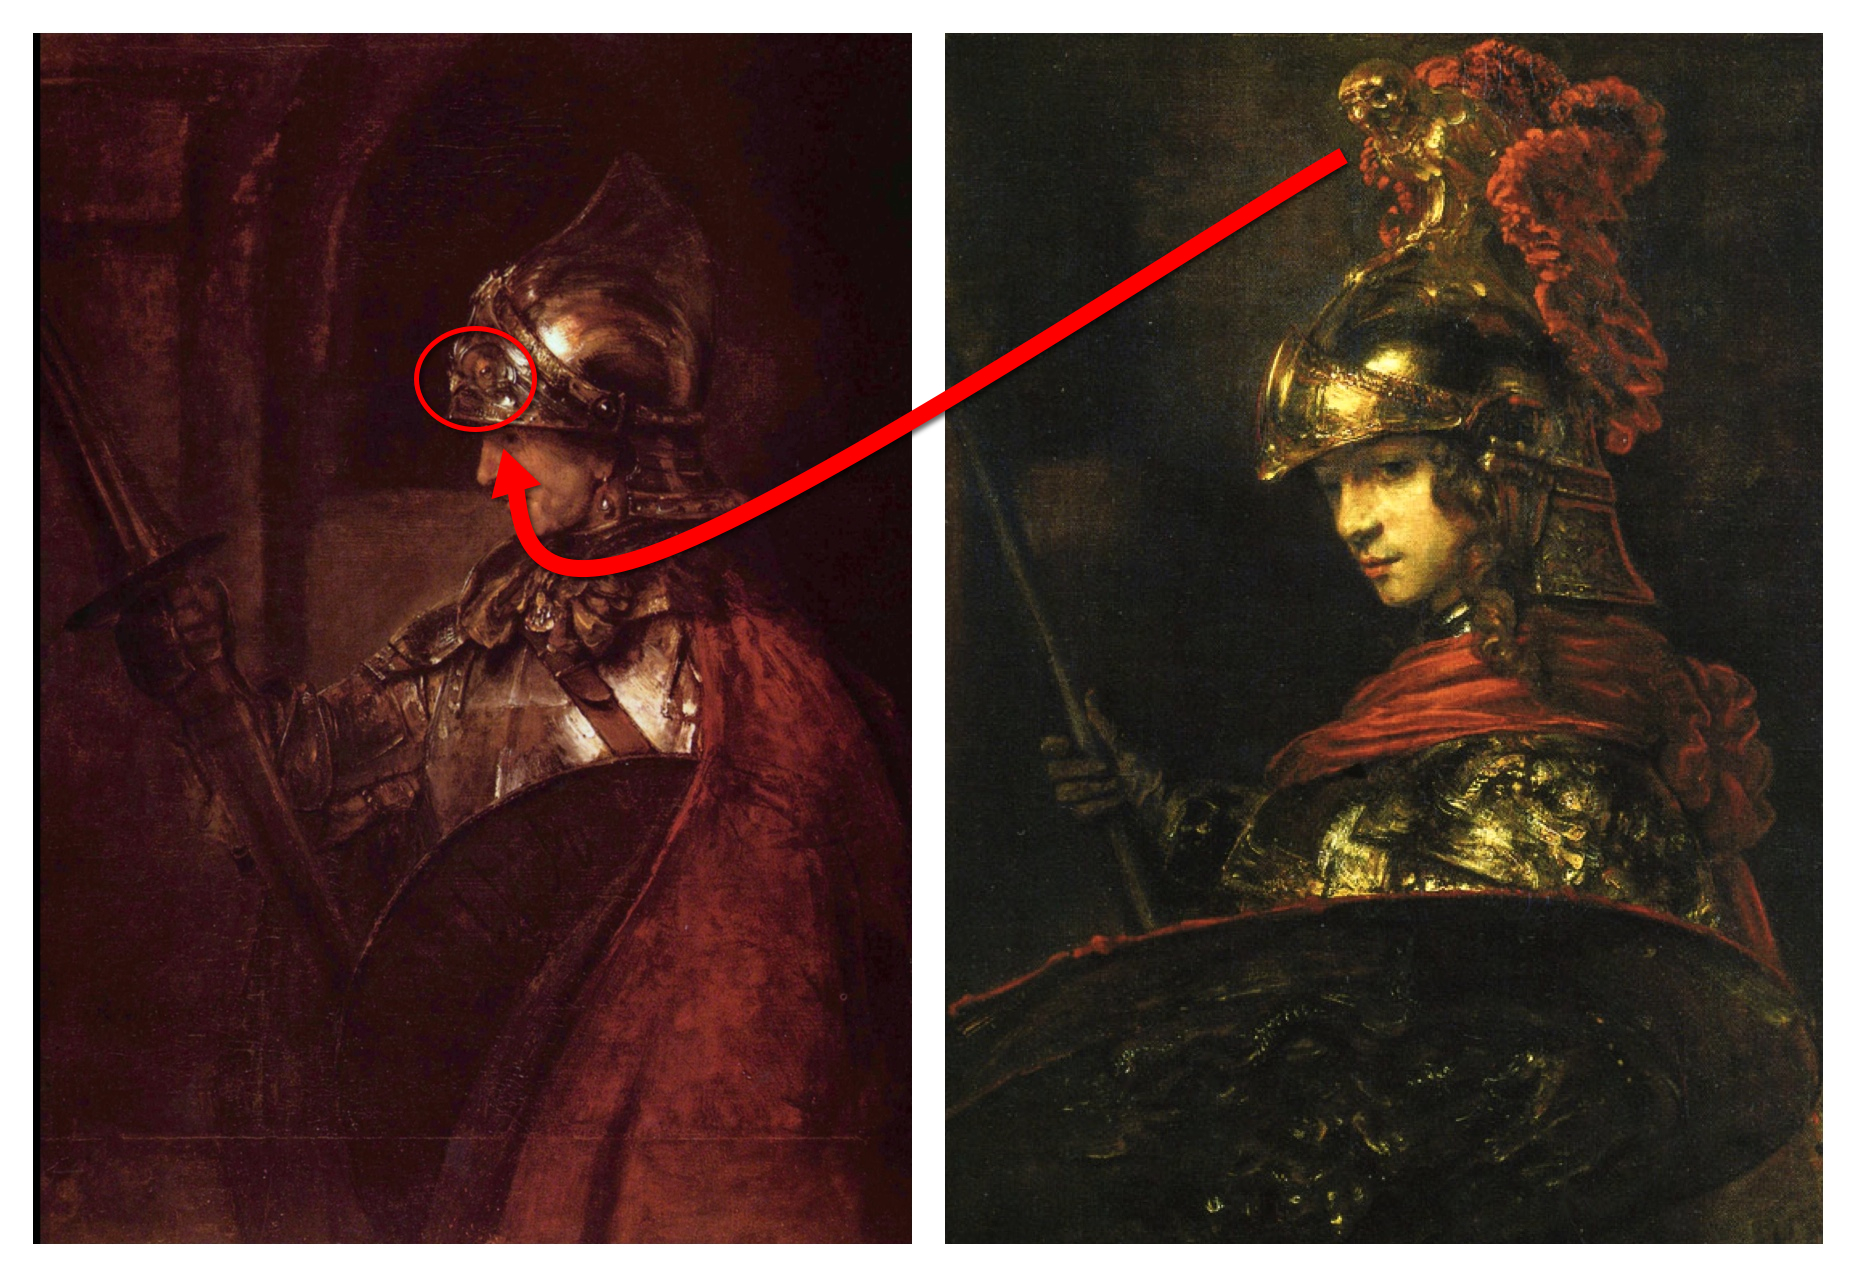 EPPH | Rembrandt's Man in Armour (1655) and Minerva (c.1655)